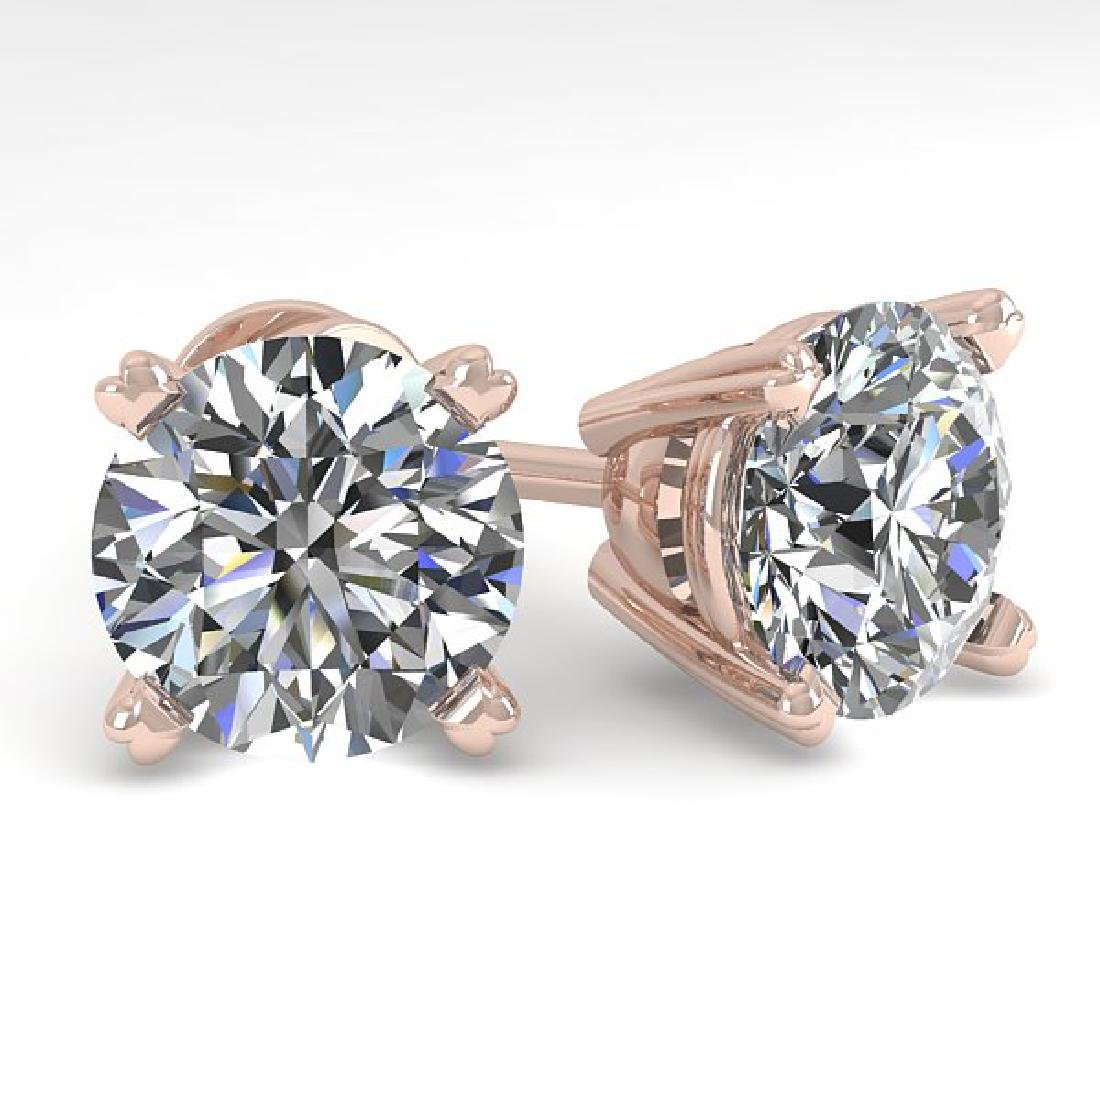 4 CTW Certified VS/SI Diamond Stud Earrings 18K Rose